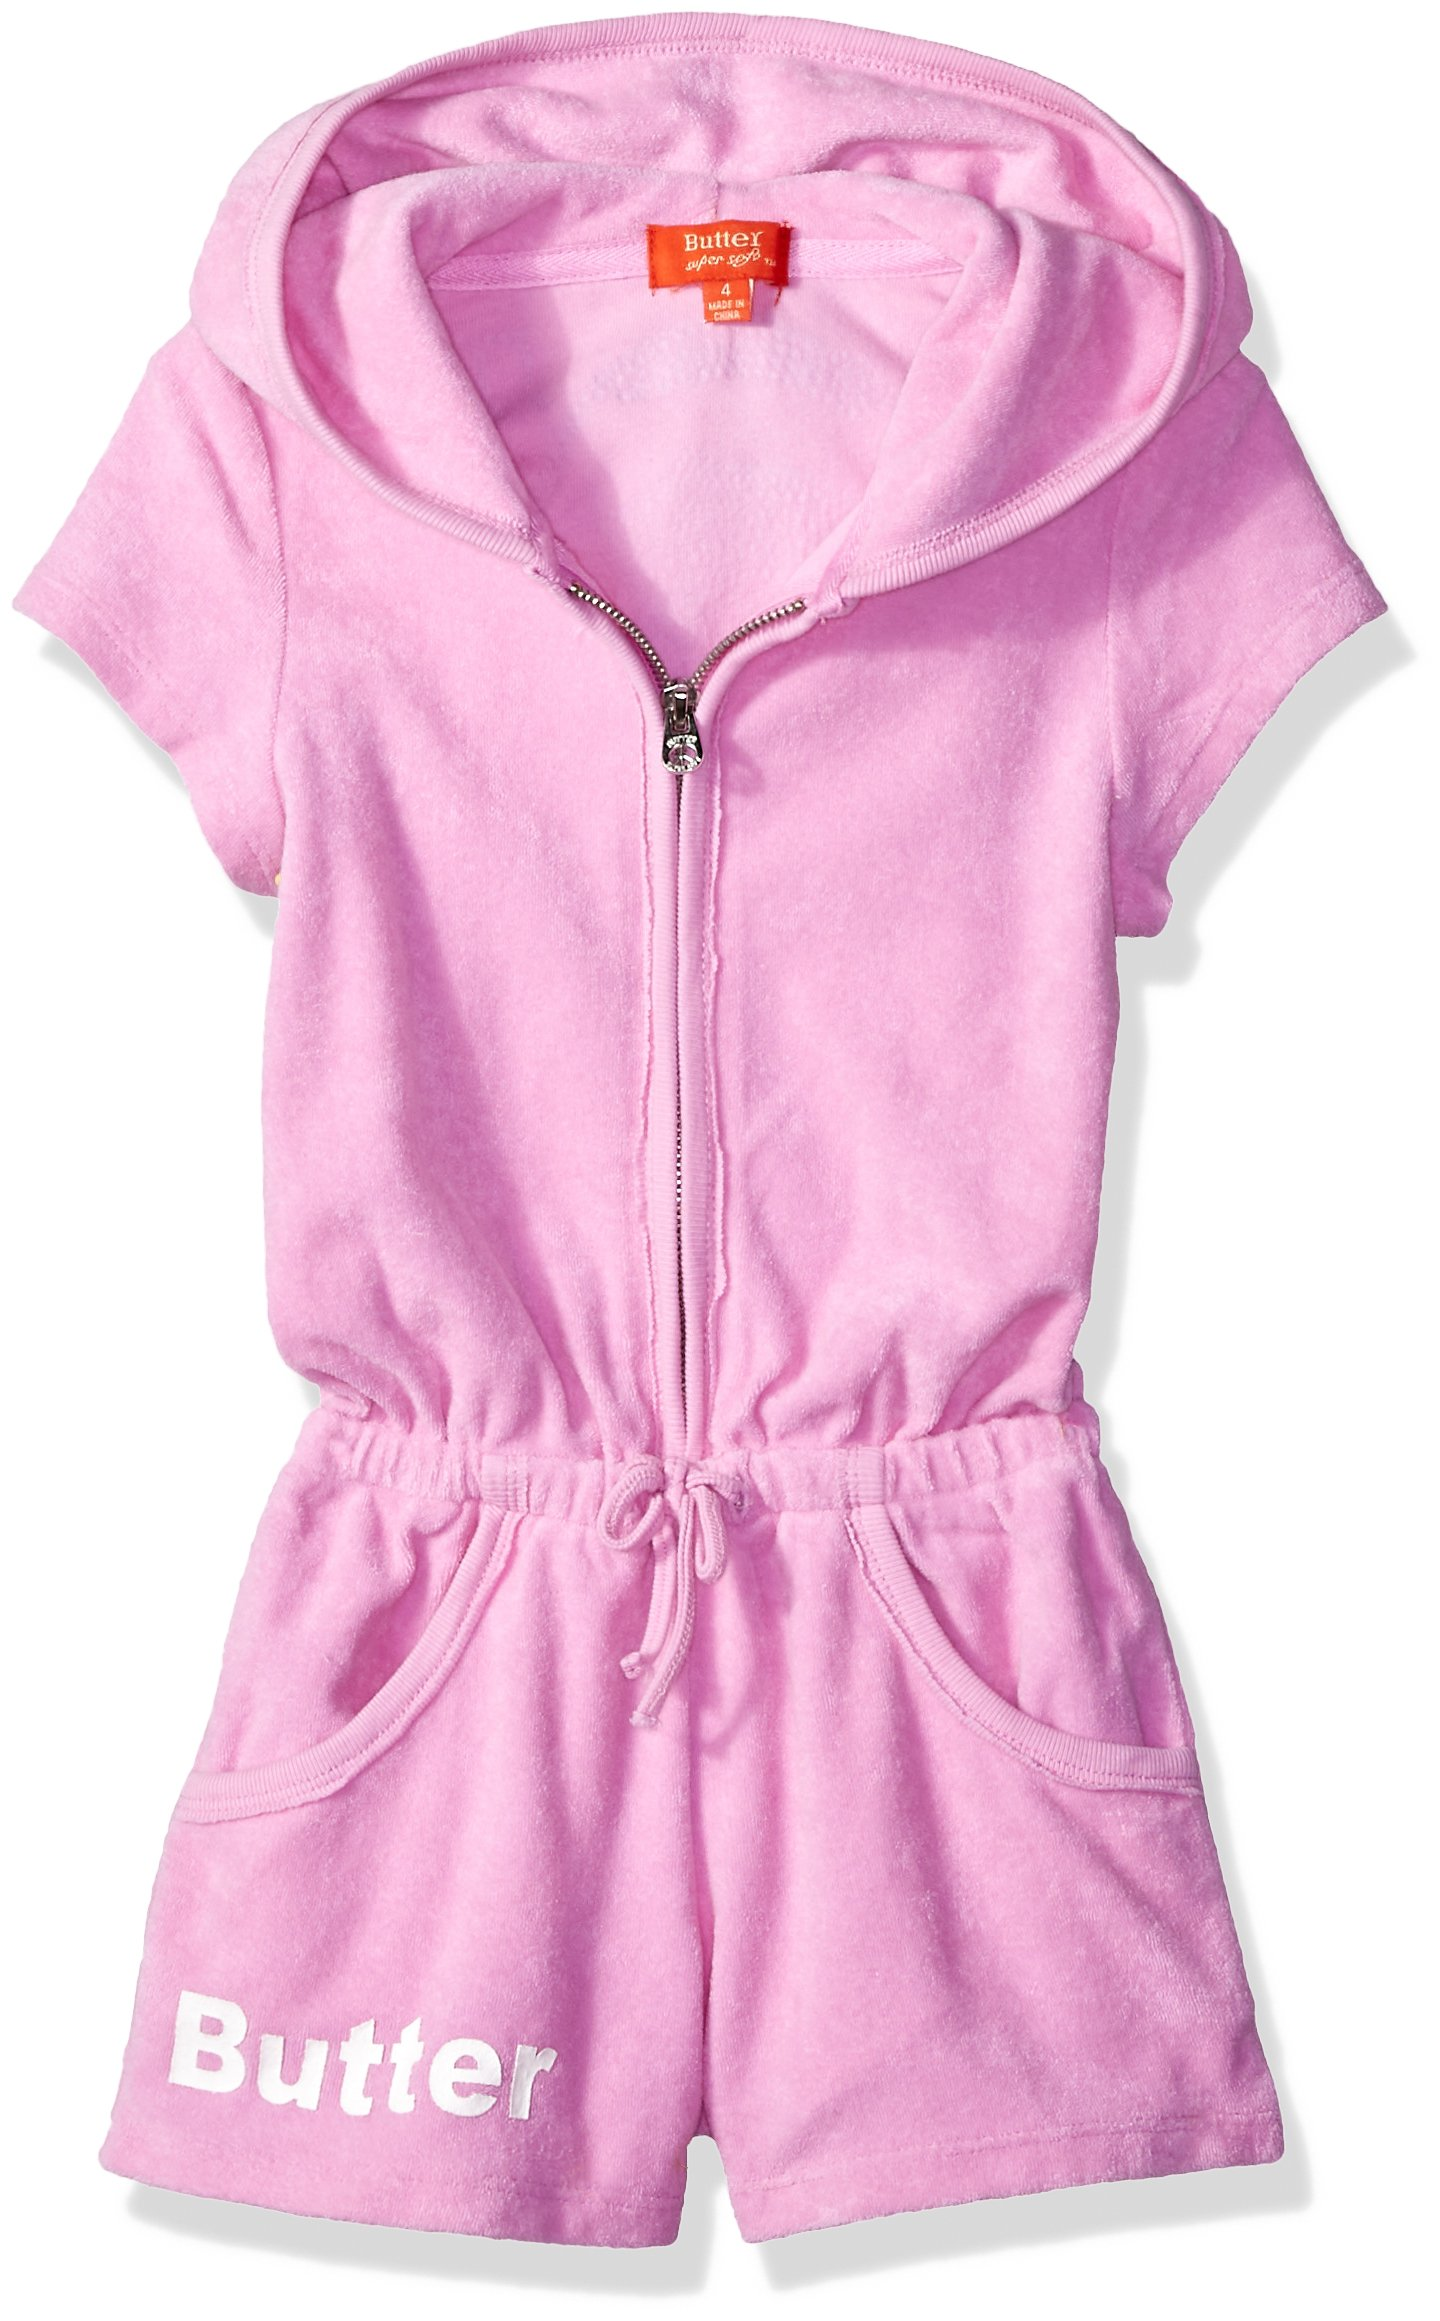 Butter Girls' Little Romper, French Terry Pastel Lavender 4